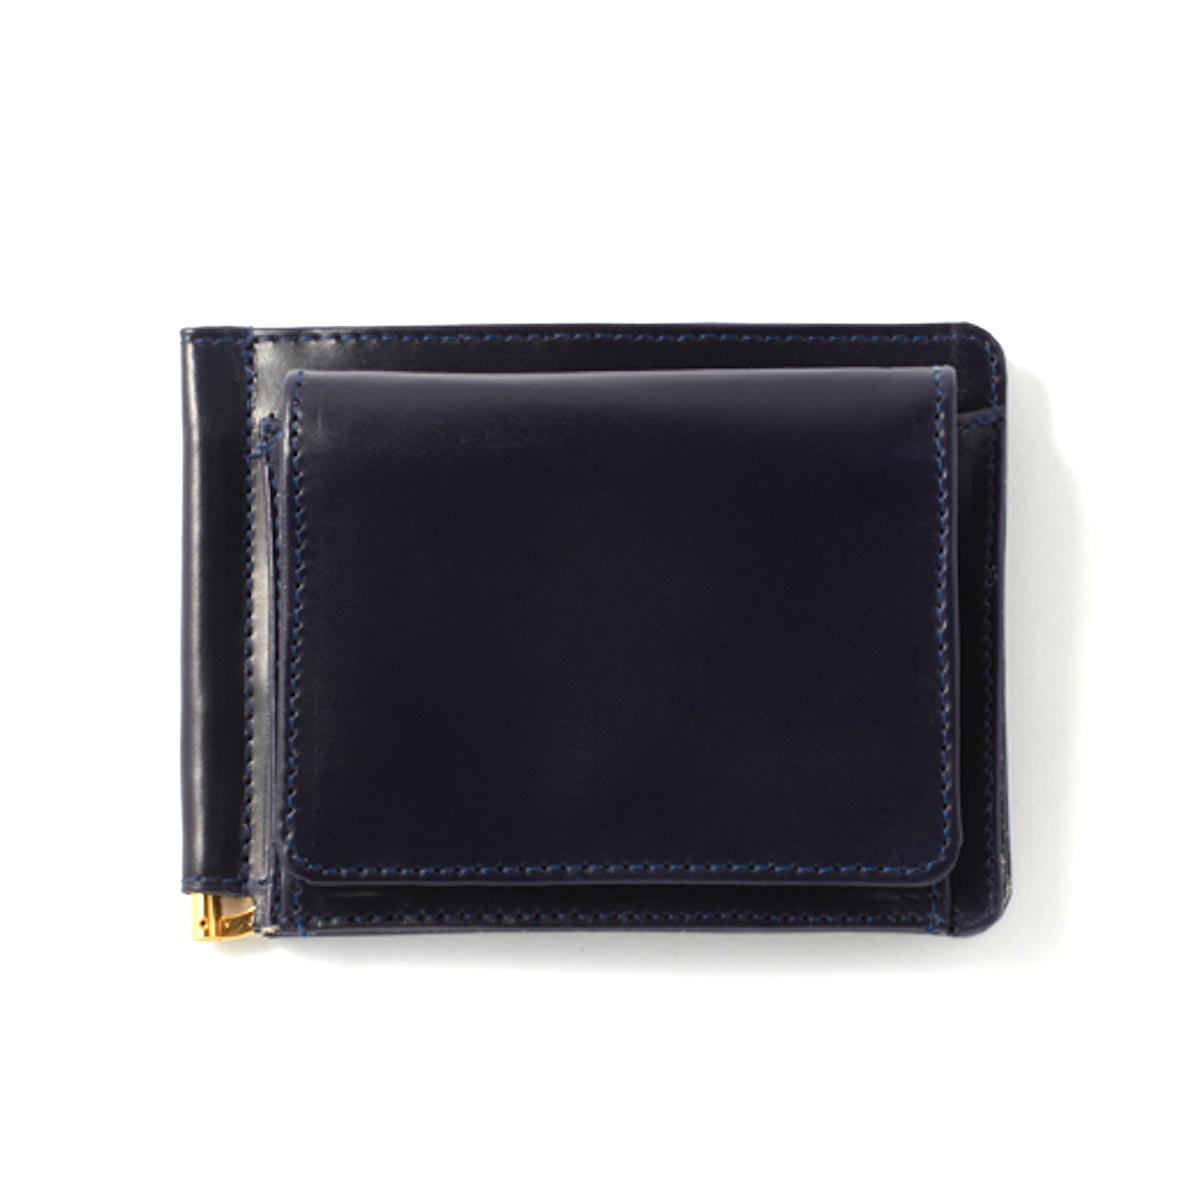 GLEN ROYAL / MONEY CLIP WITH COIN POCKET -DARK NAVY